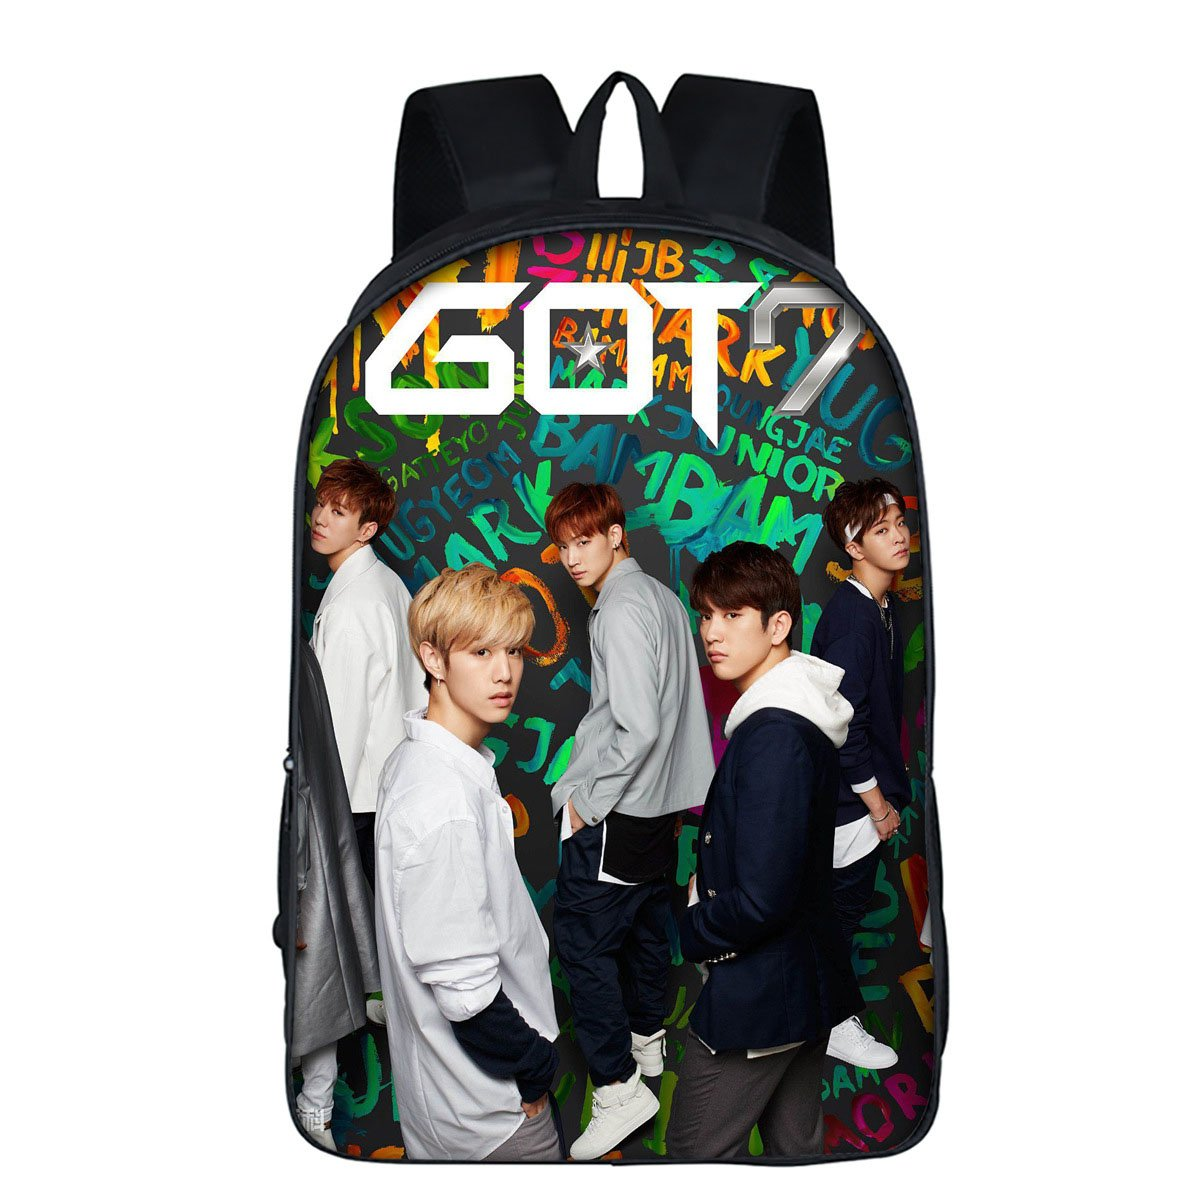 ALLDECOR Kpop GOT7 Student Schoolbag Decompression Backpack Casual Shoulder Bag